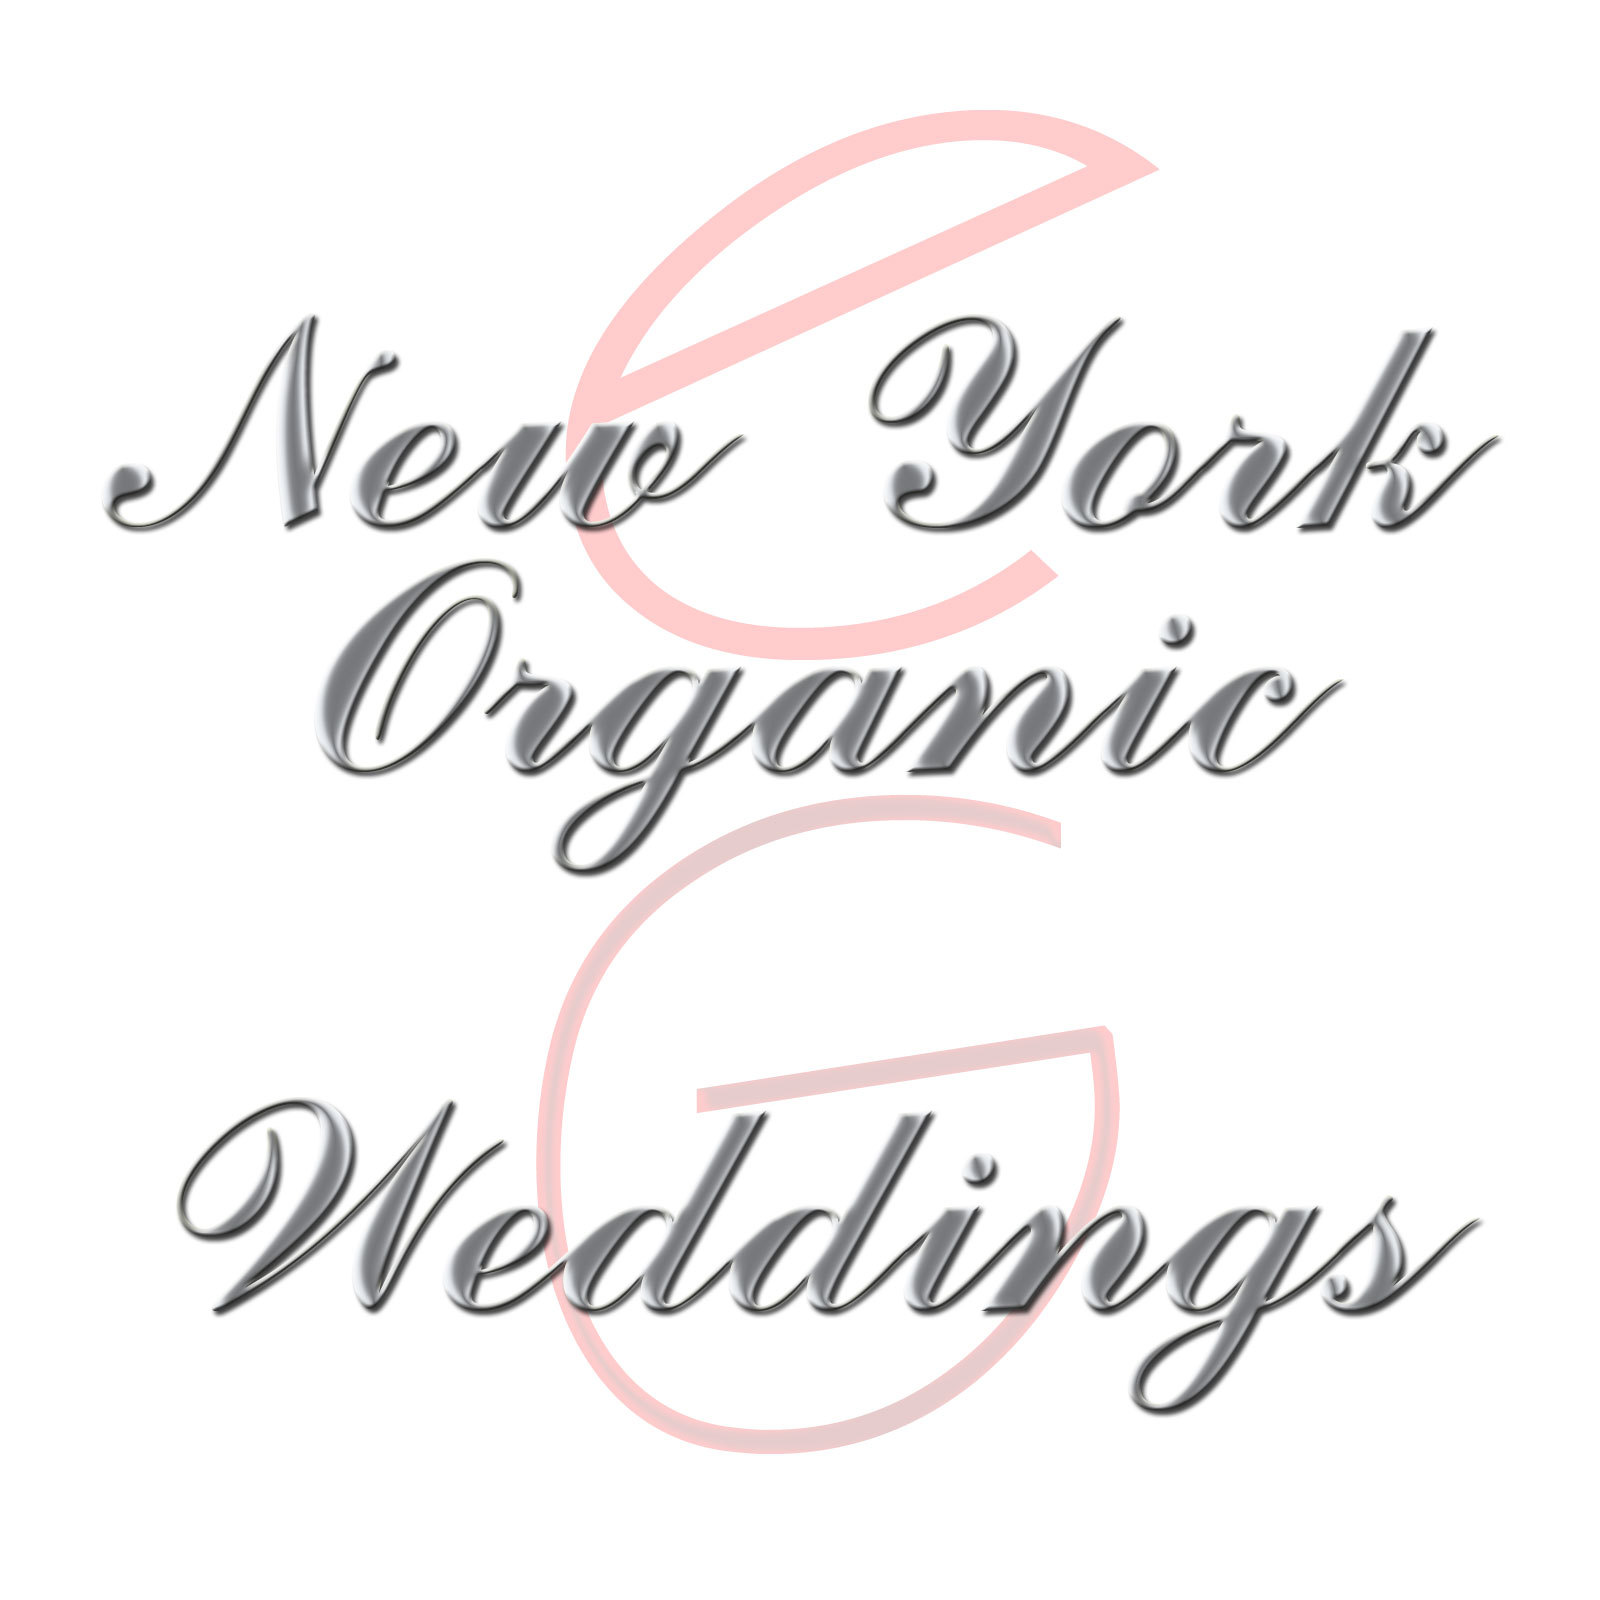 green, Weddings, York, New, Organic, Eco, New york organic weddings